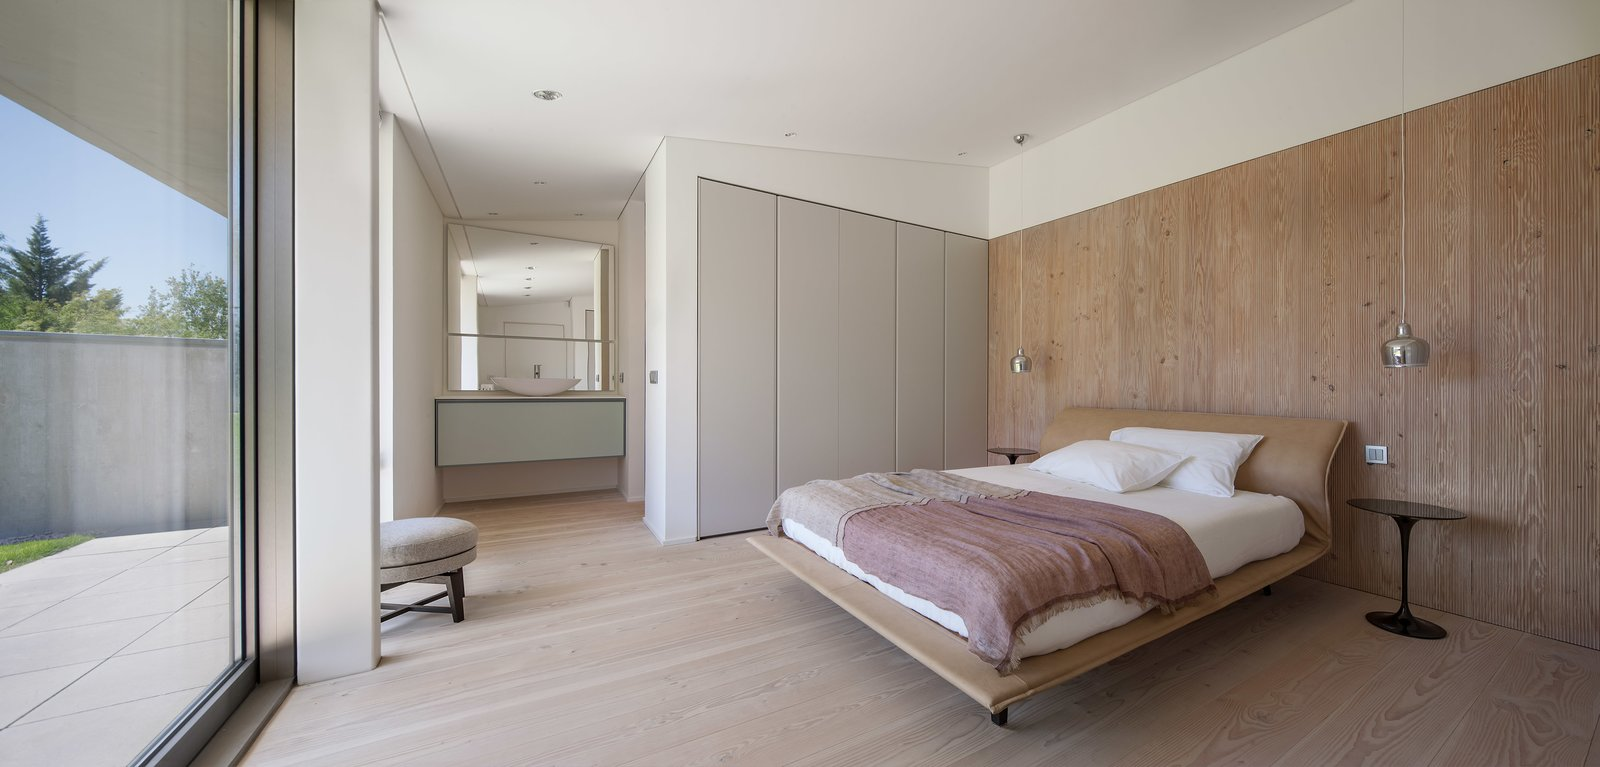 Bedroom, Wardrobe, Bed, Ceiling Lighting, Pendant Lighting, Night Stands, and Light Hardwood Floor  The Öcher House by MLMR Architecture Consultancy